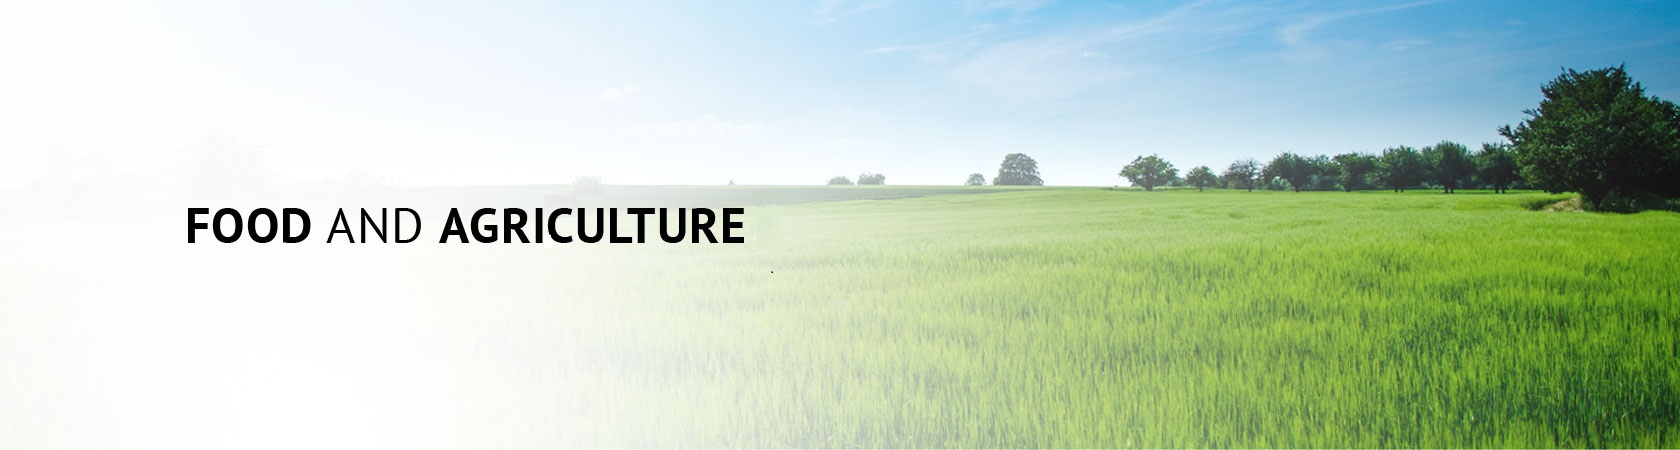 FOOD-AND-AGRILCULTURE